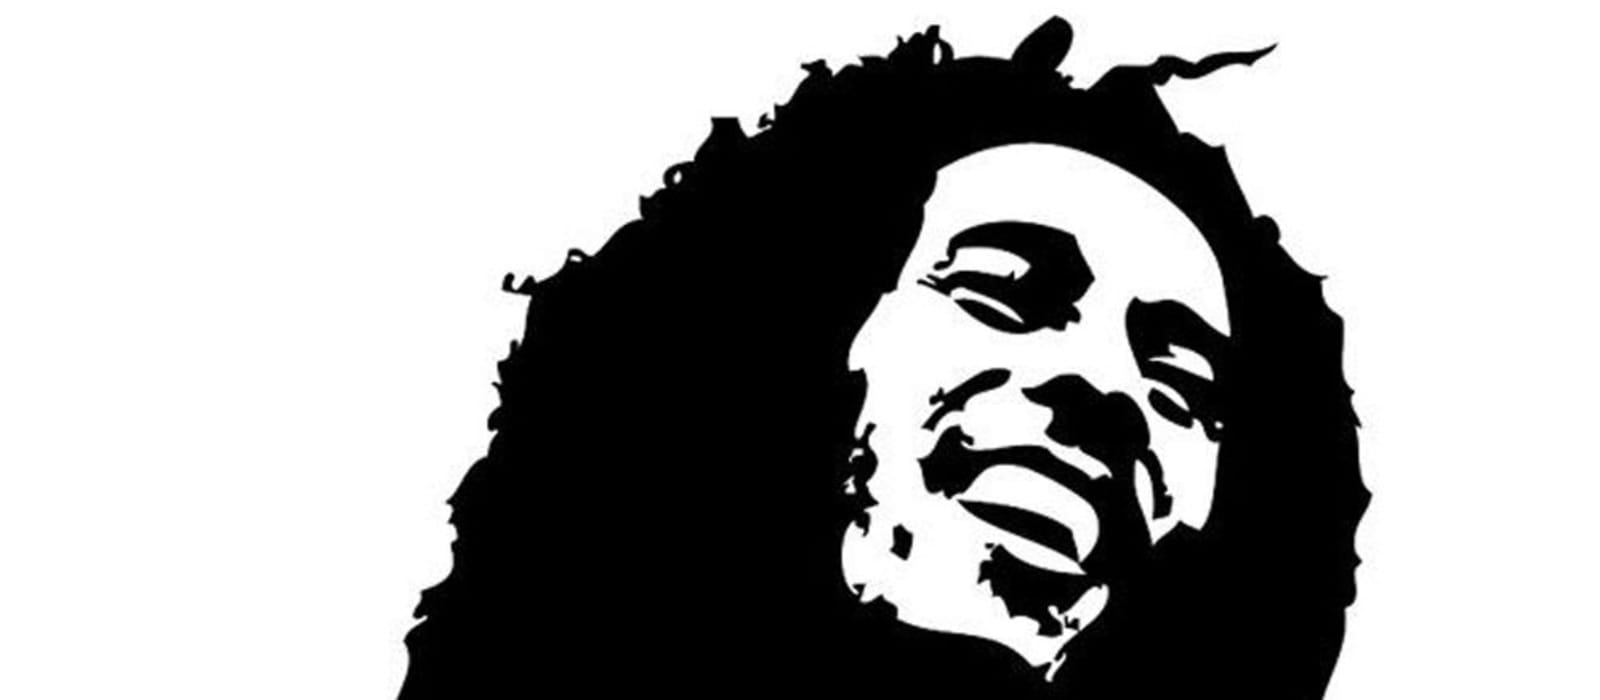 Illustration of Bob Marley